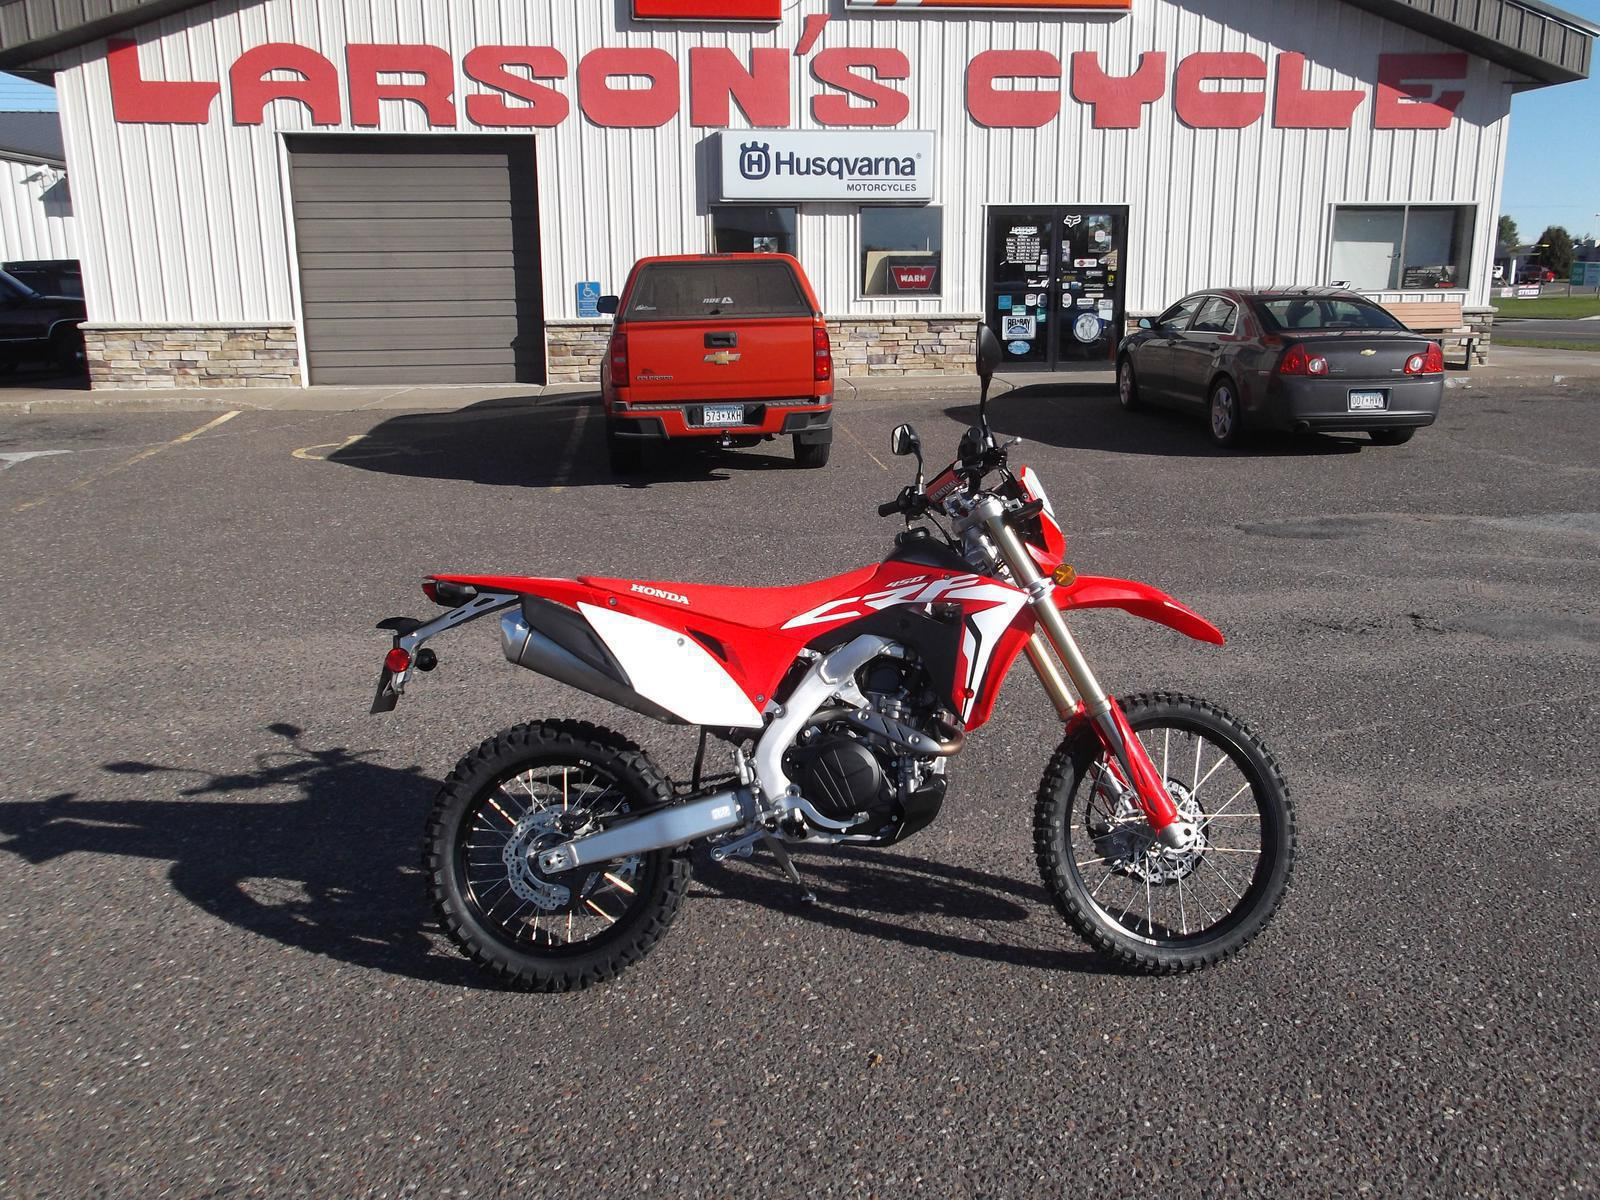 2019 Honda Crf450l For Sale In Cambridge Mn Larsons Cycle Inc